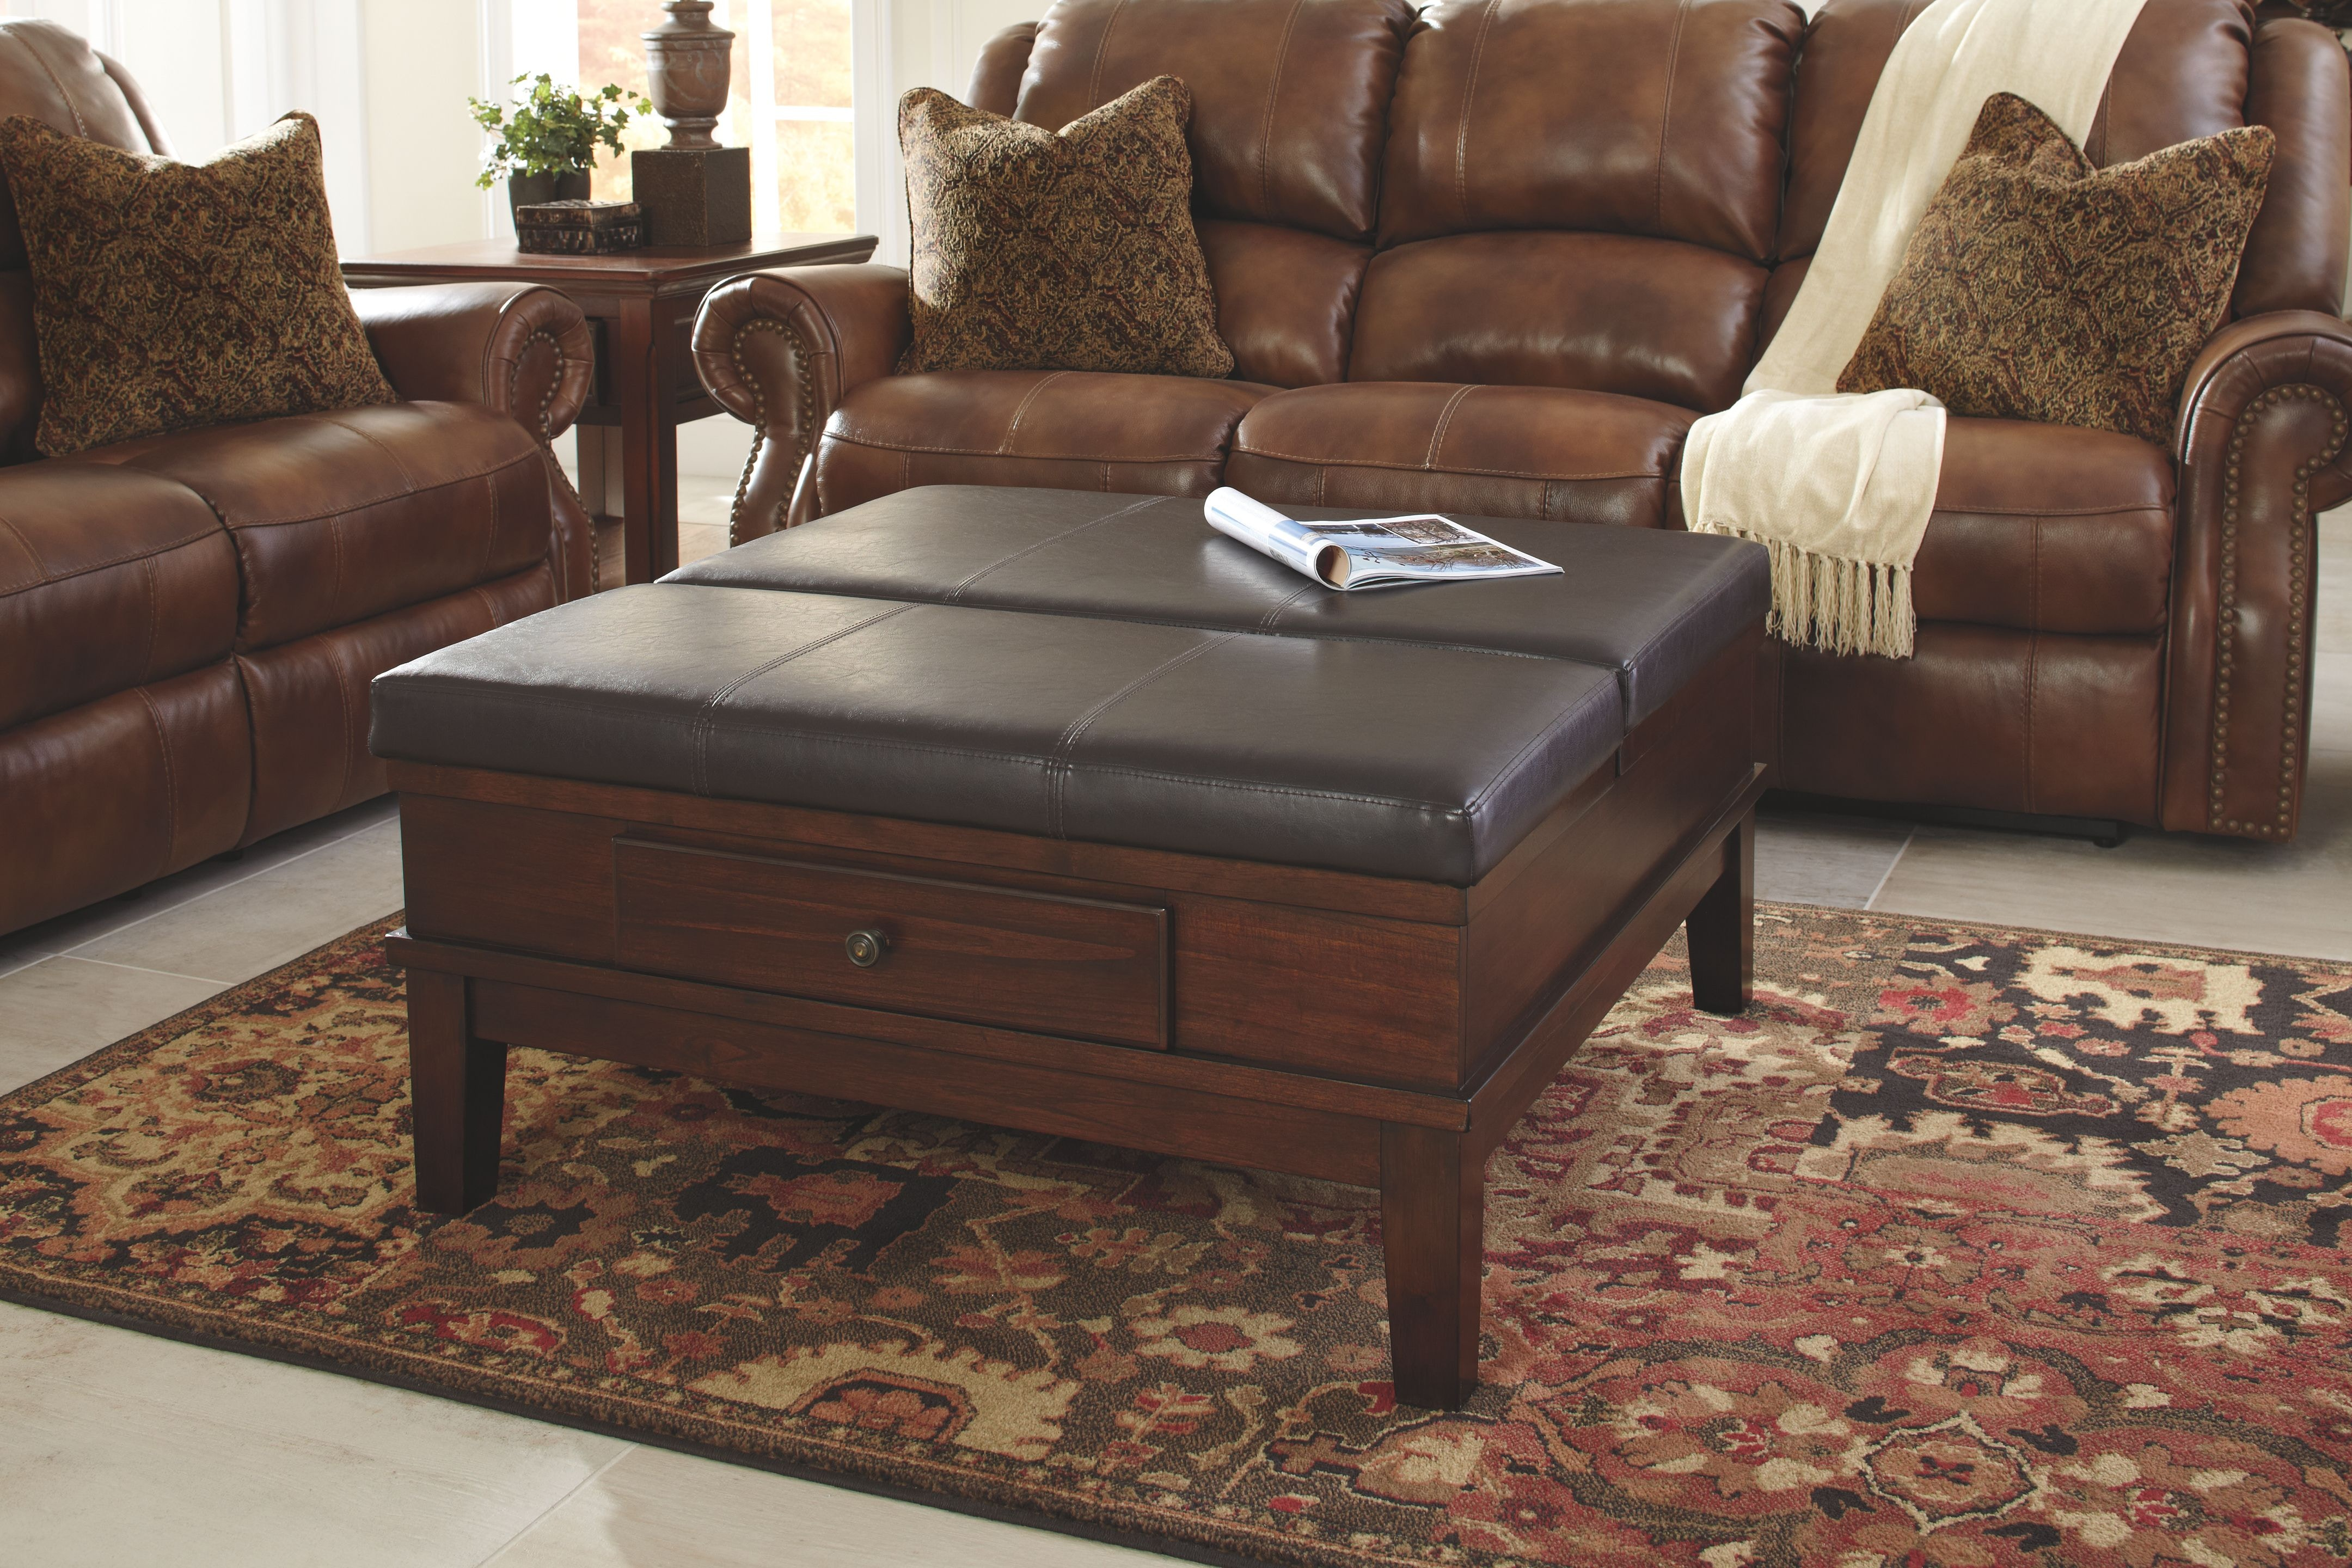 Wonderful Signature Design By Ashley Ottoman Cocktail Table T845 21